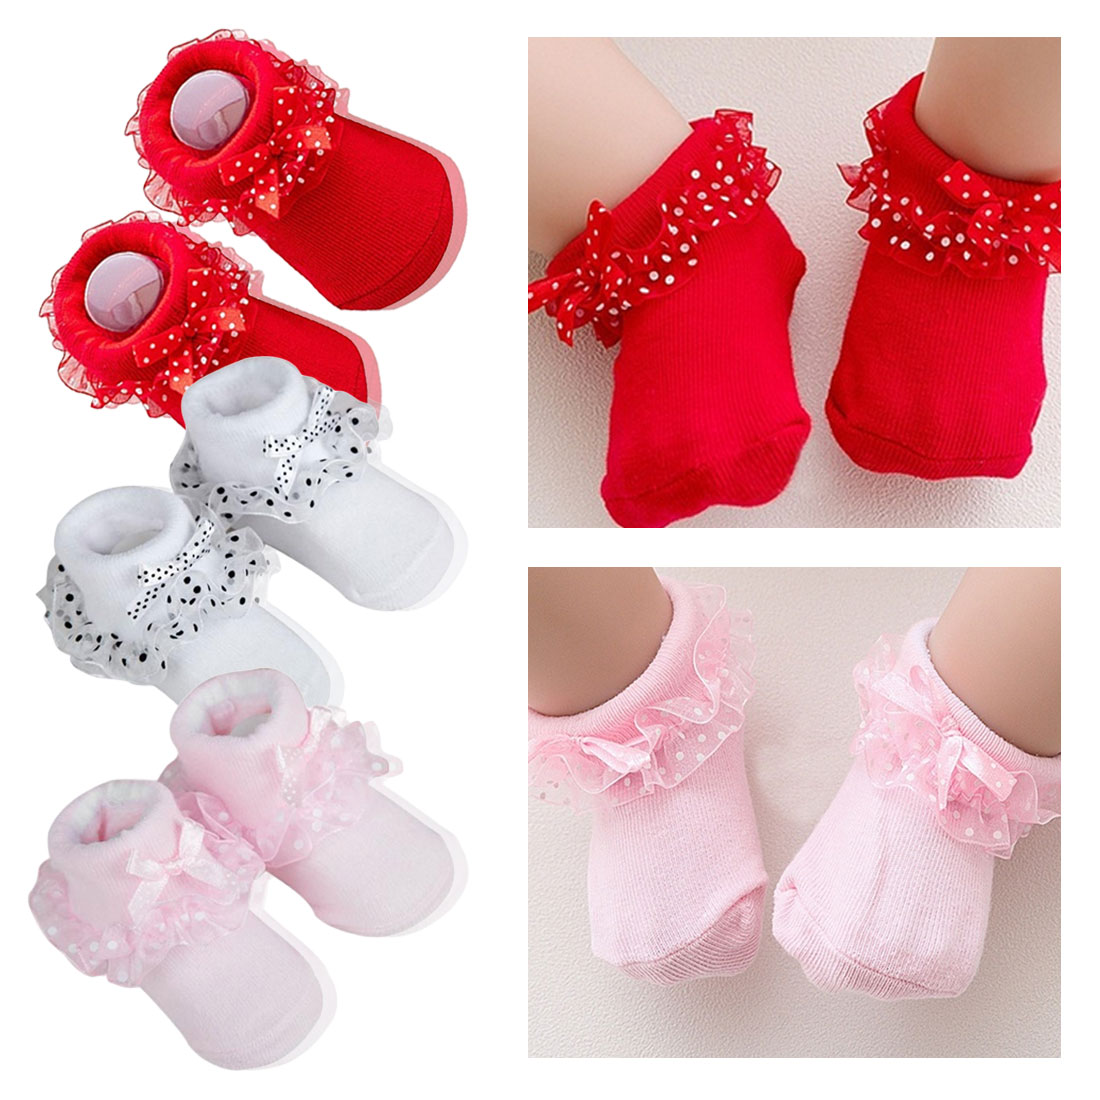 Lace Baby Socks Girls&Boy Soft Cotton Polka Dot Ptint Tutu Newborn Socks Infant Ankle High Short Baby Girl Socks 0-12 Months